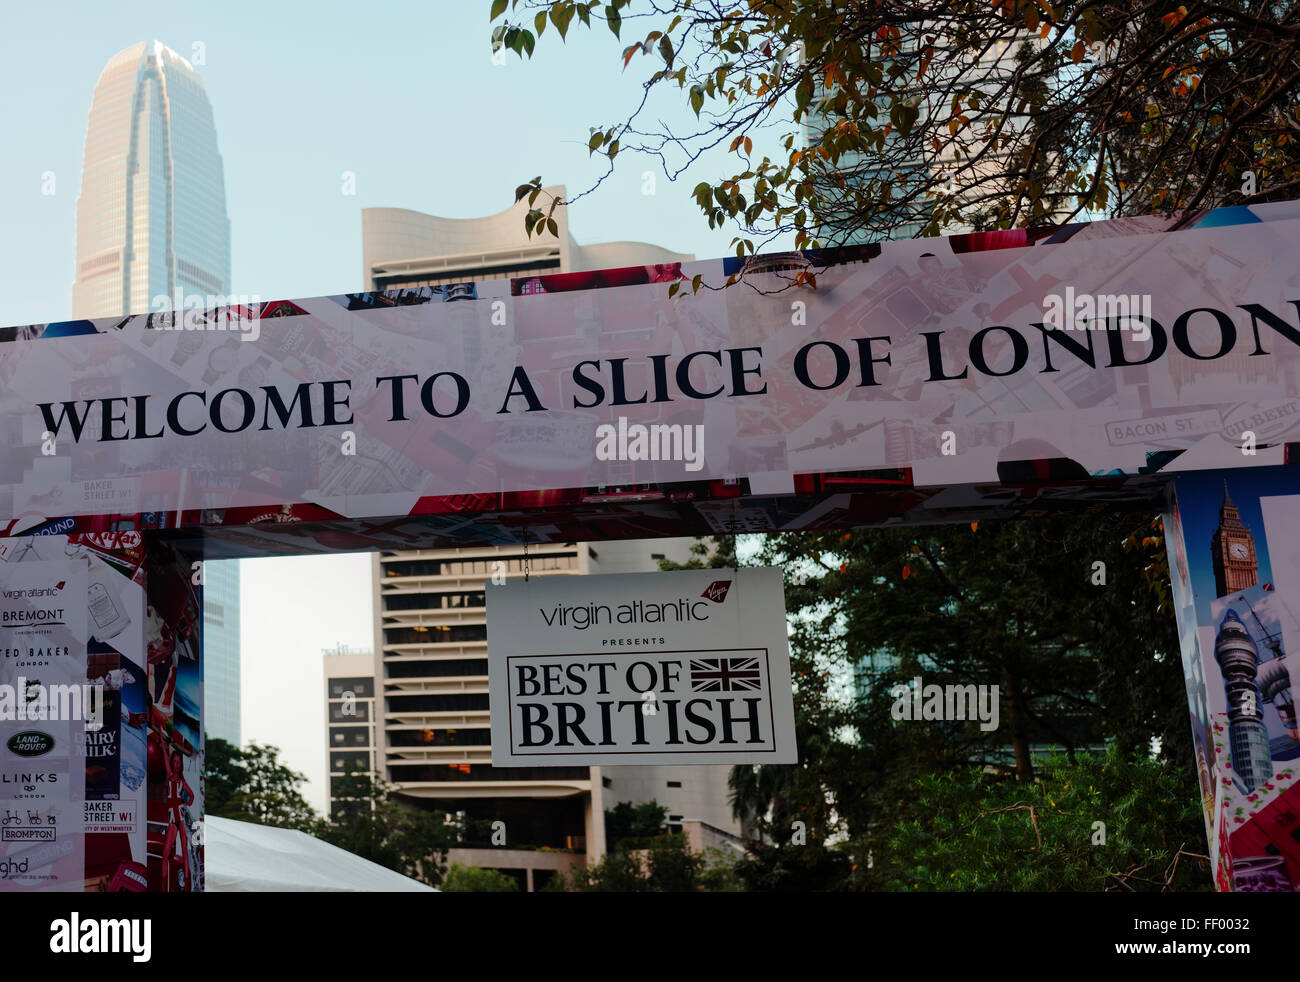 Welcome To A Slice Of London Greeting Banner Exhibition Hong Kong